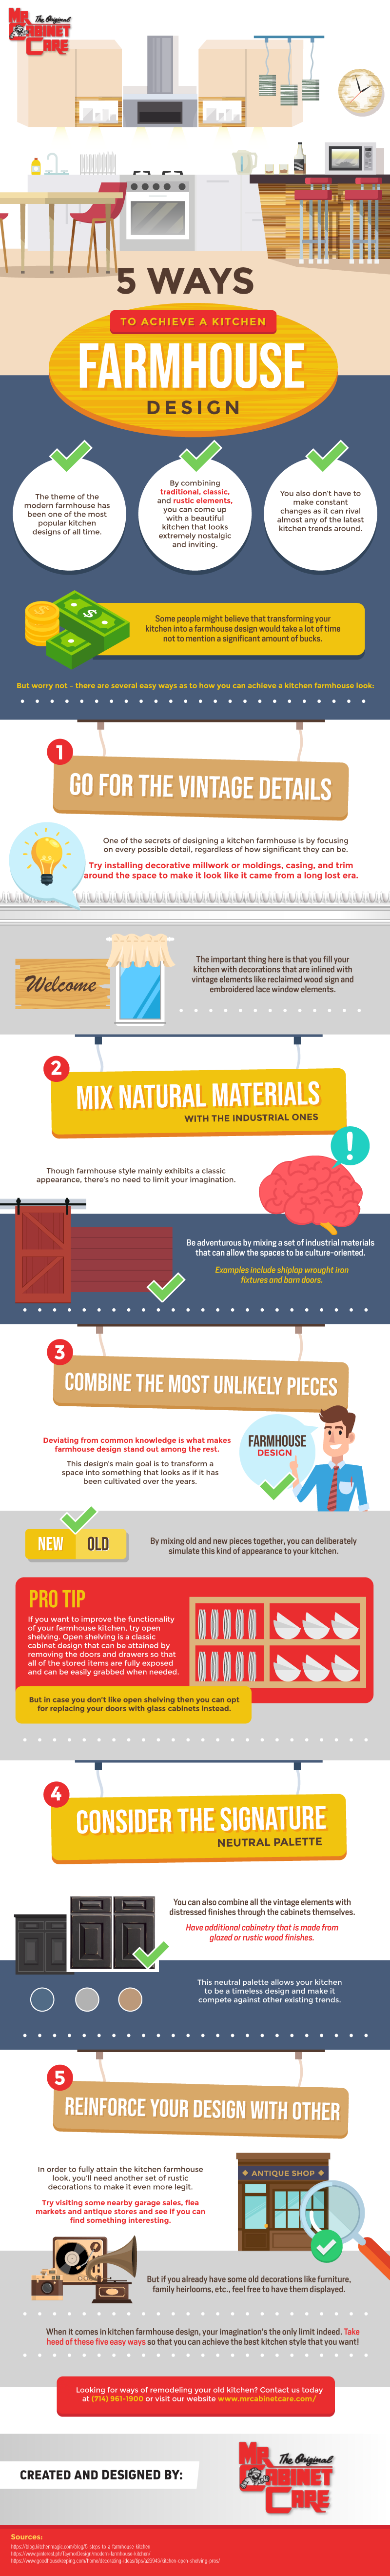 5 Ways to Achieve a Kitchen Farmhouse Design - Infographic